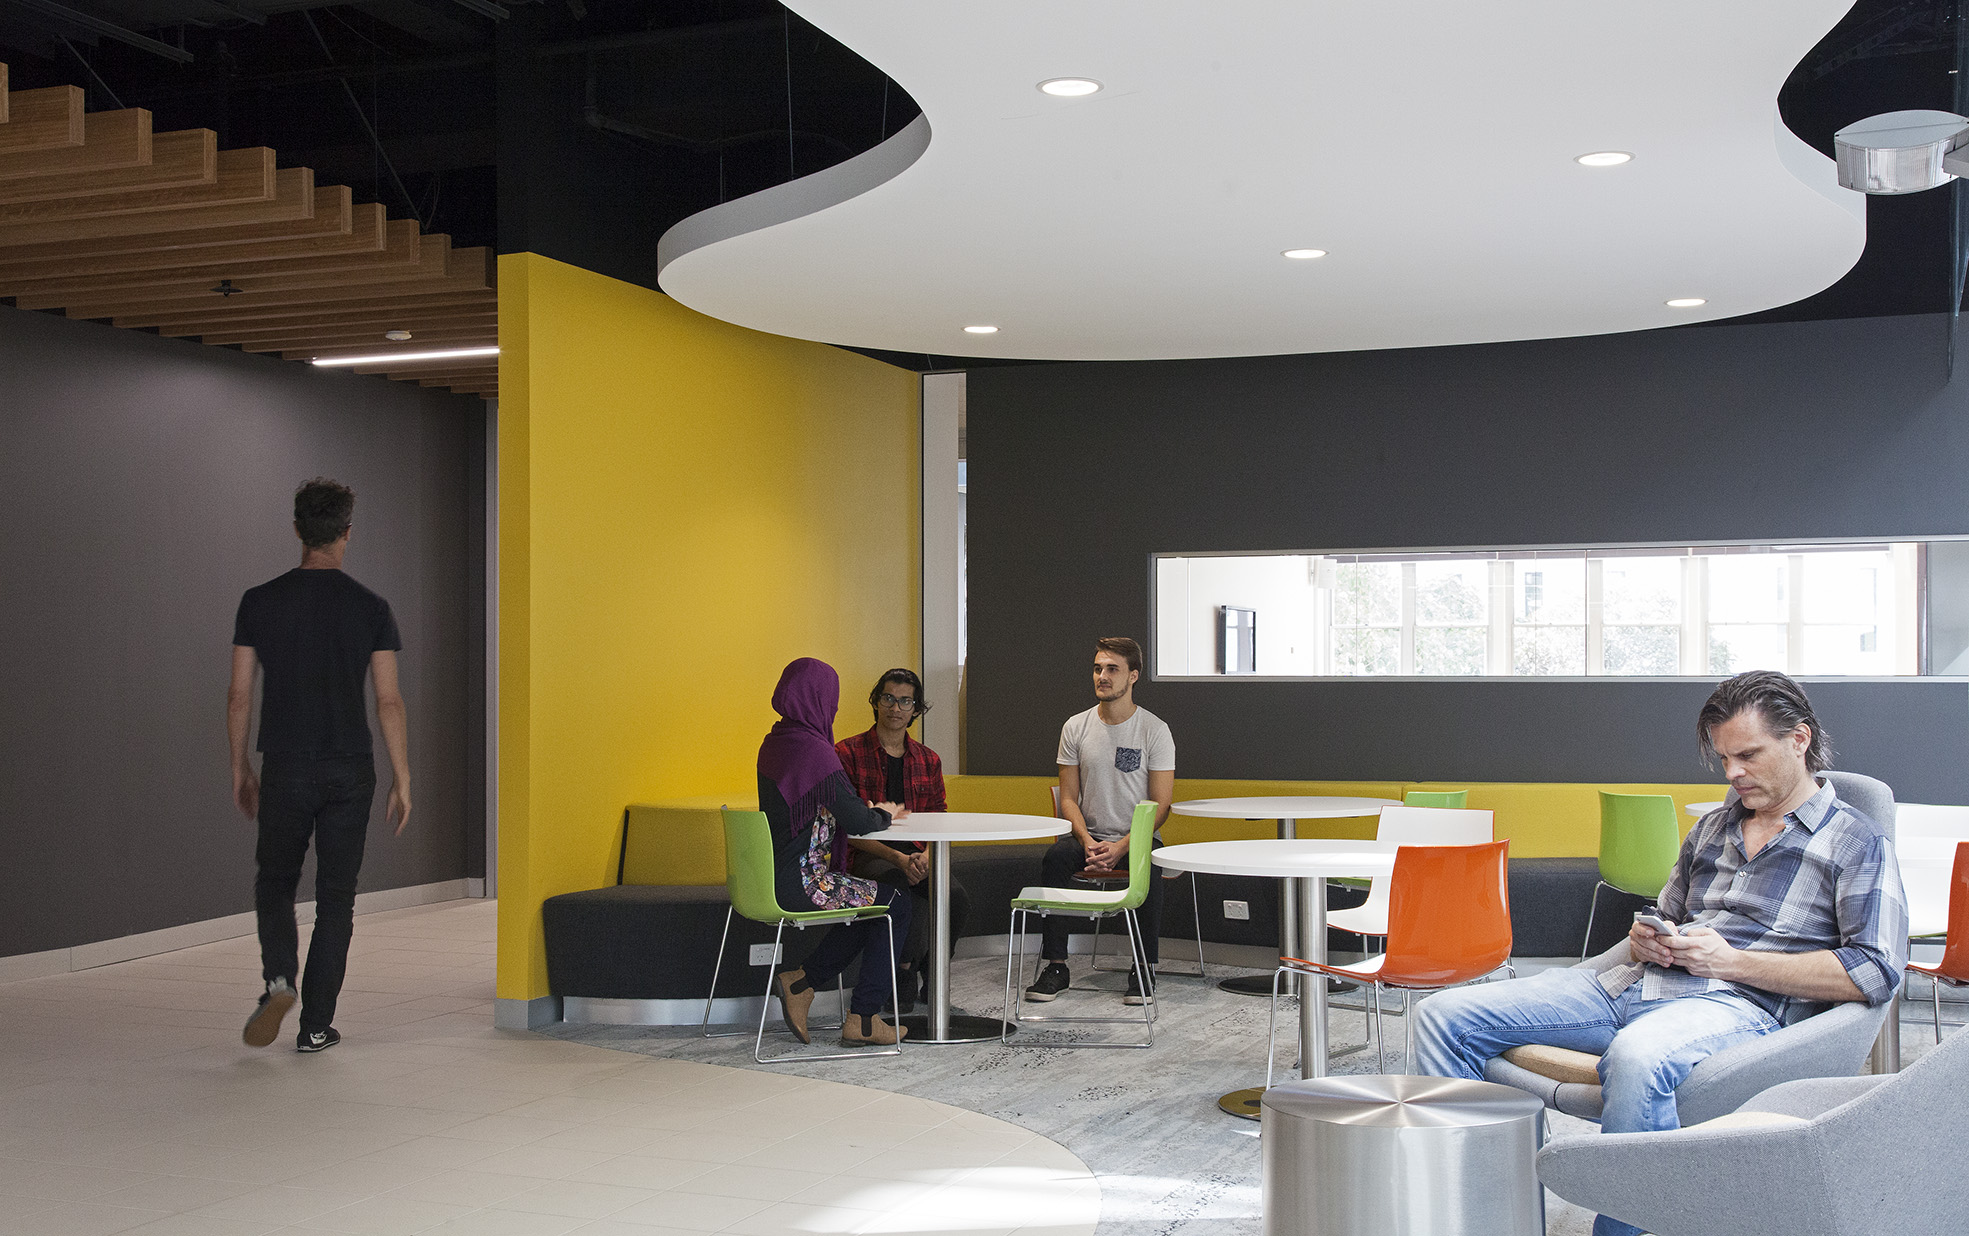 UTS Building 10 FASS & FoH Study and Meeting Space Interior Architecture – Gardner Wetherill GW 5